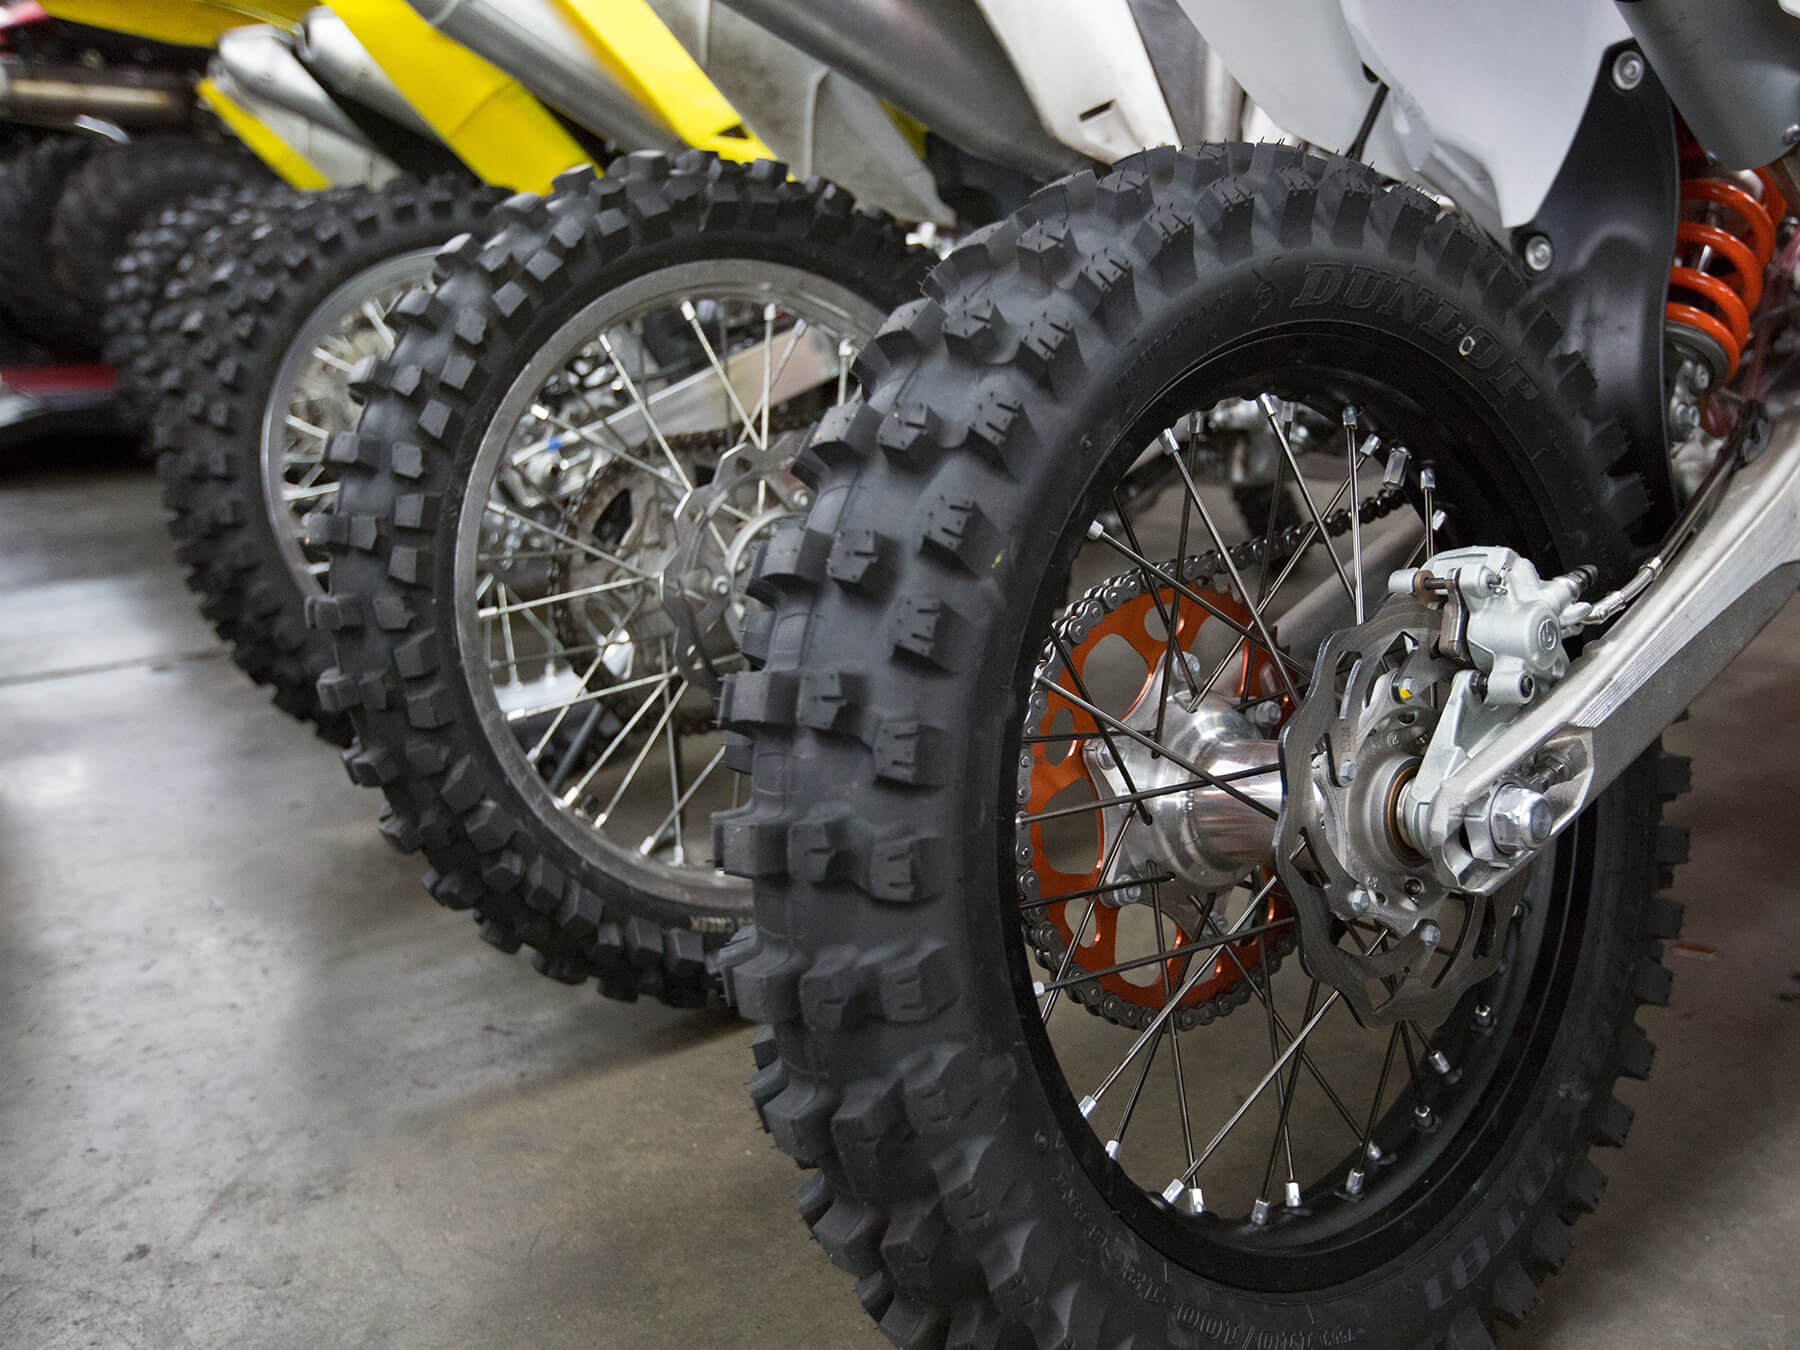 Close up on Motorcycle tires